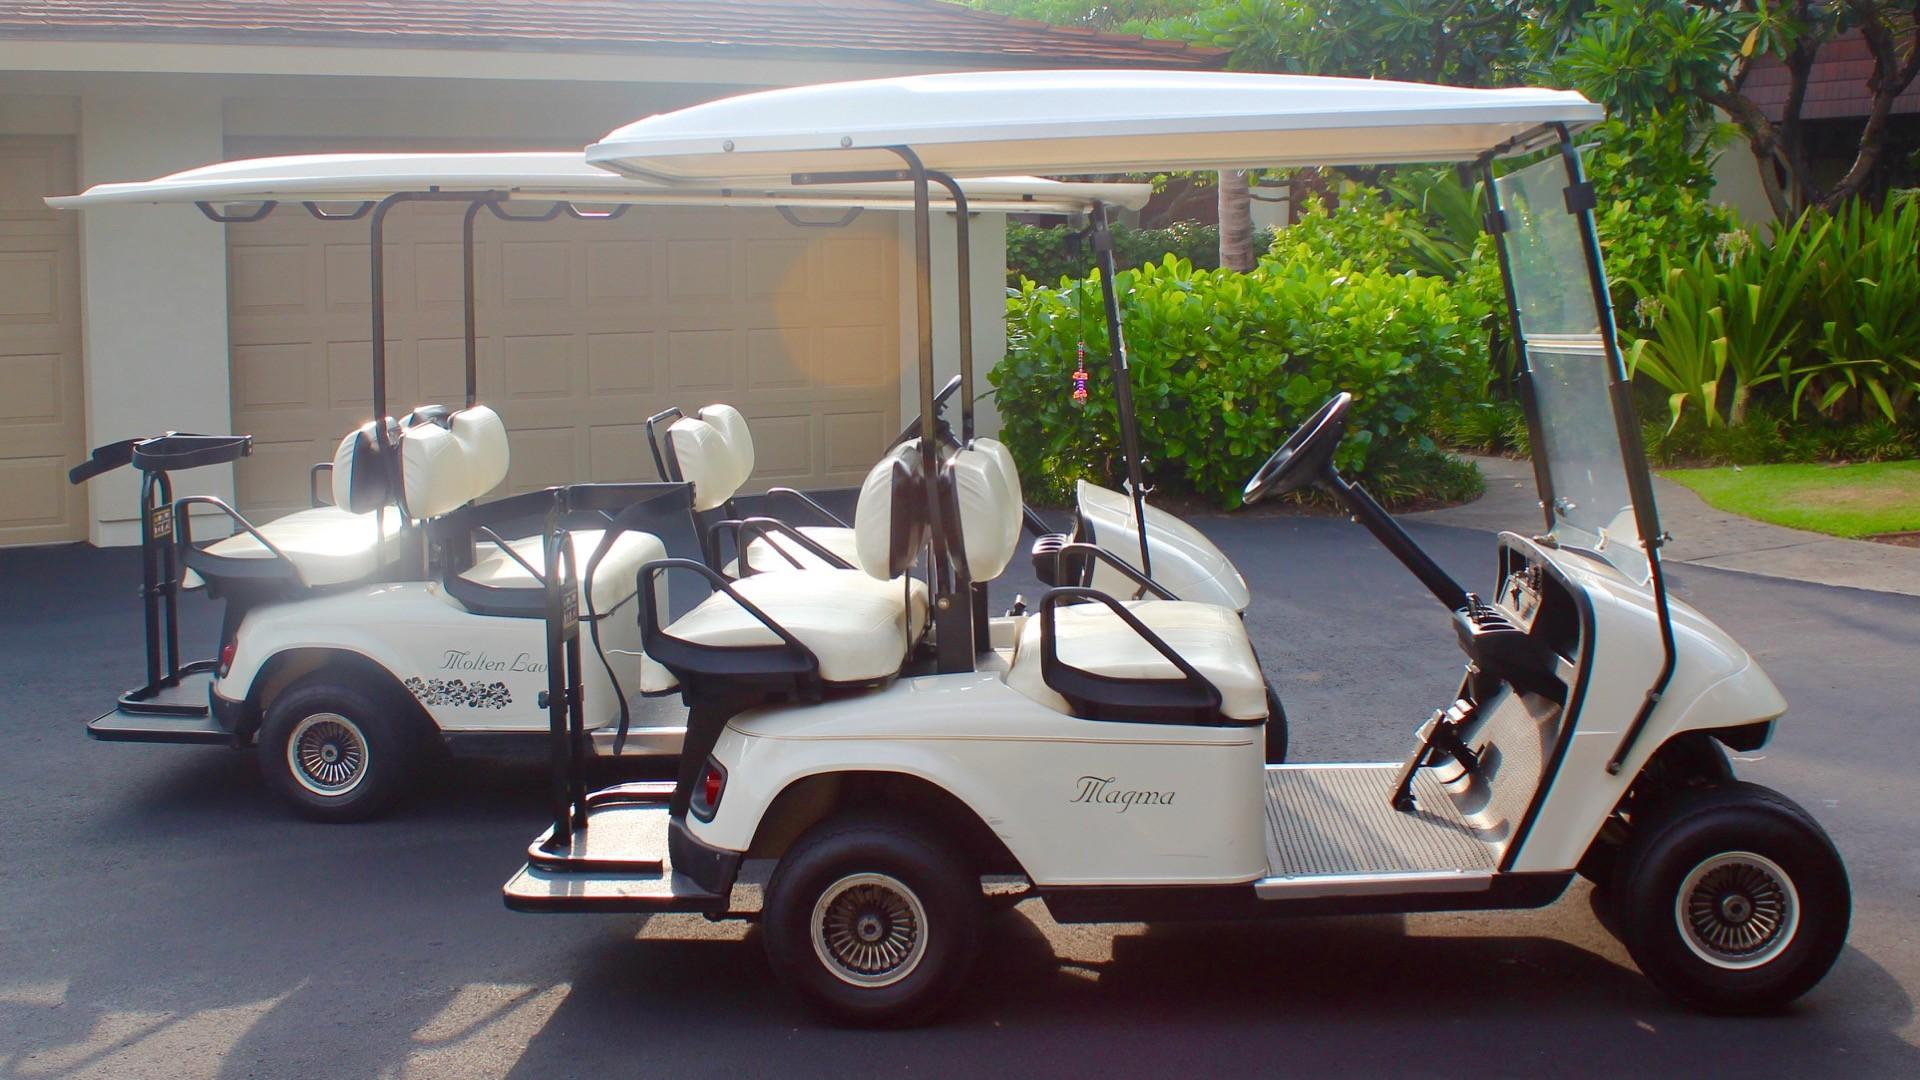 This rental comes with TWO golf carts!